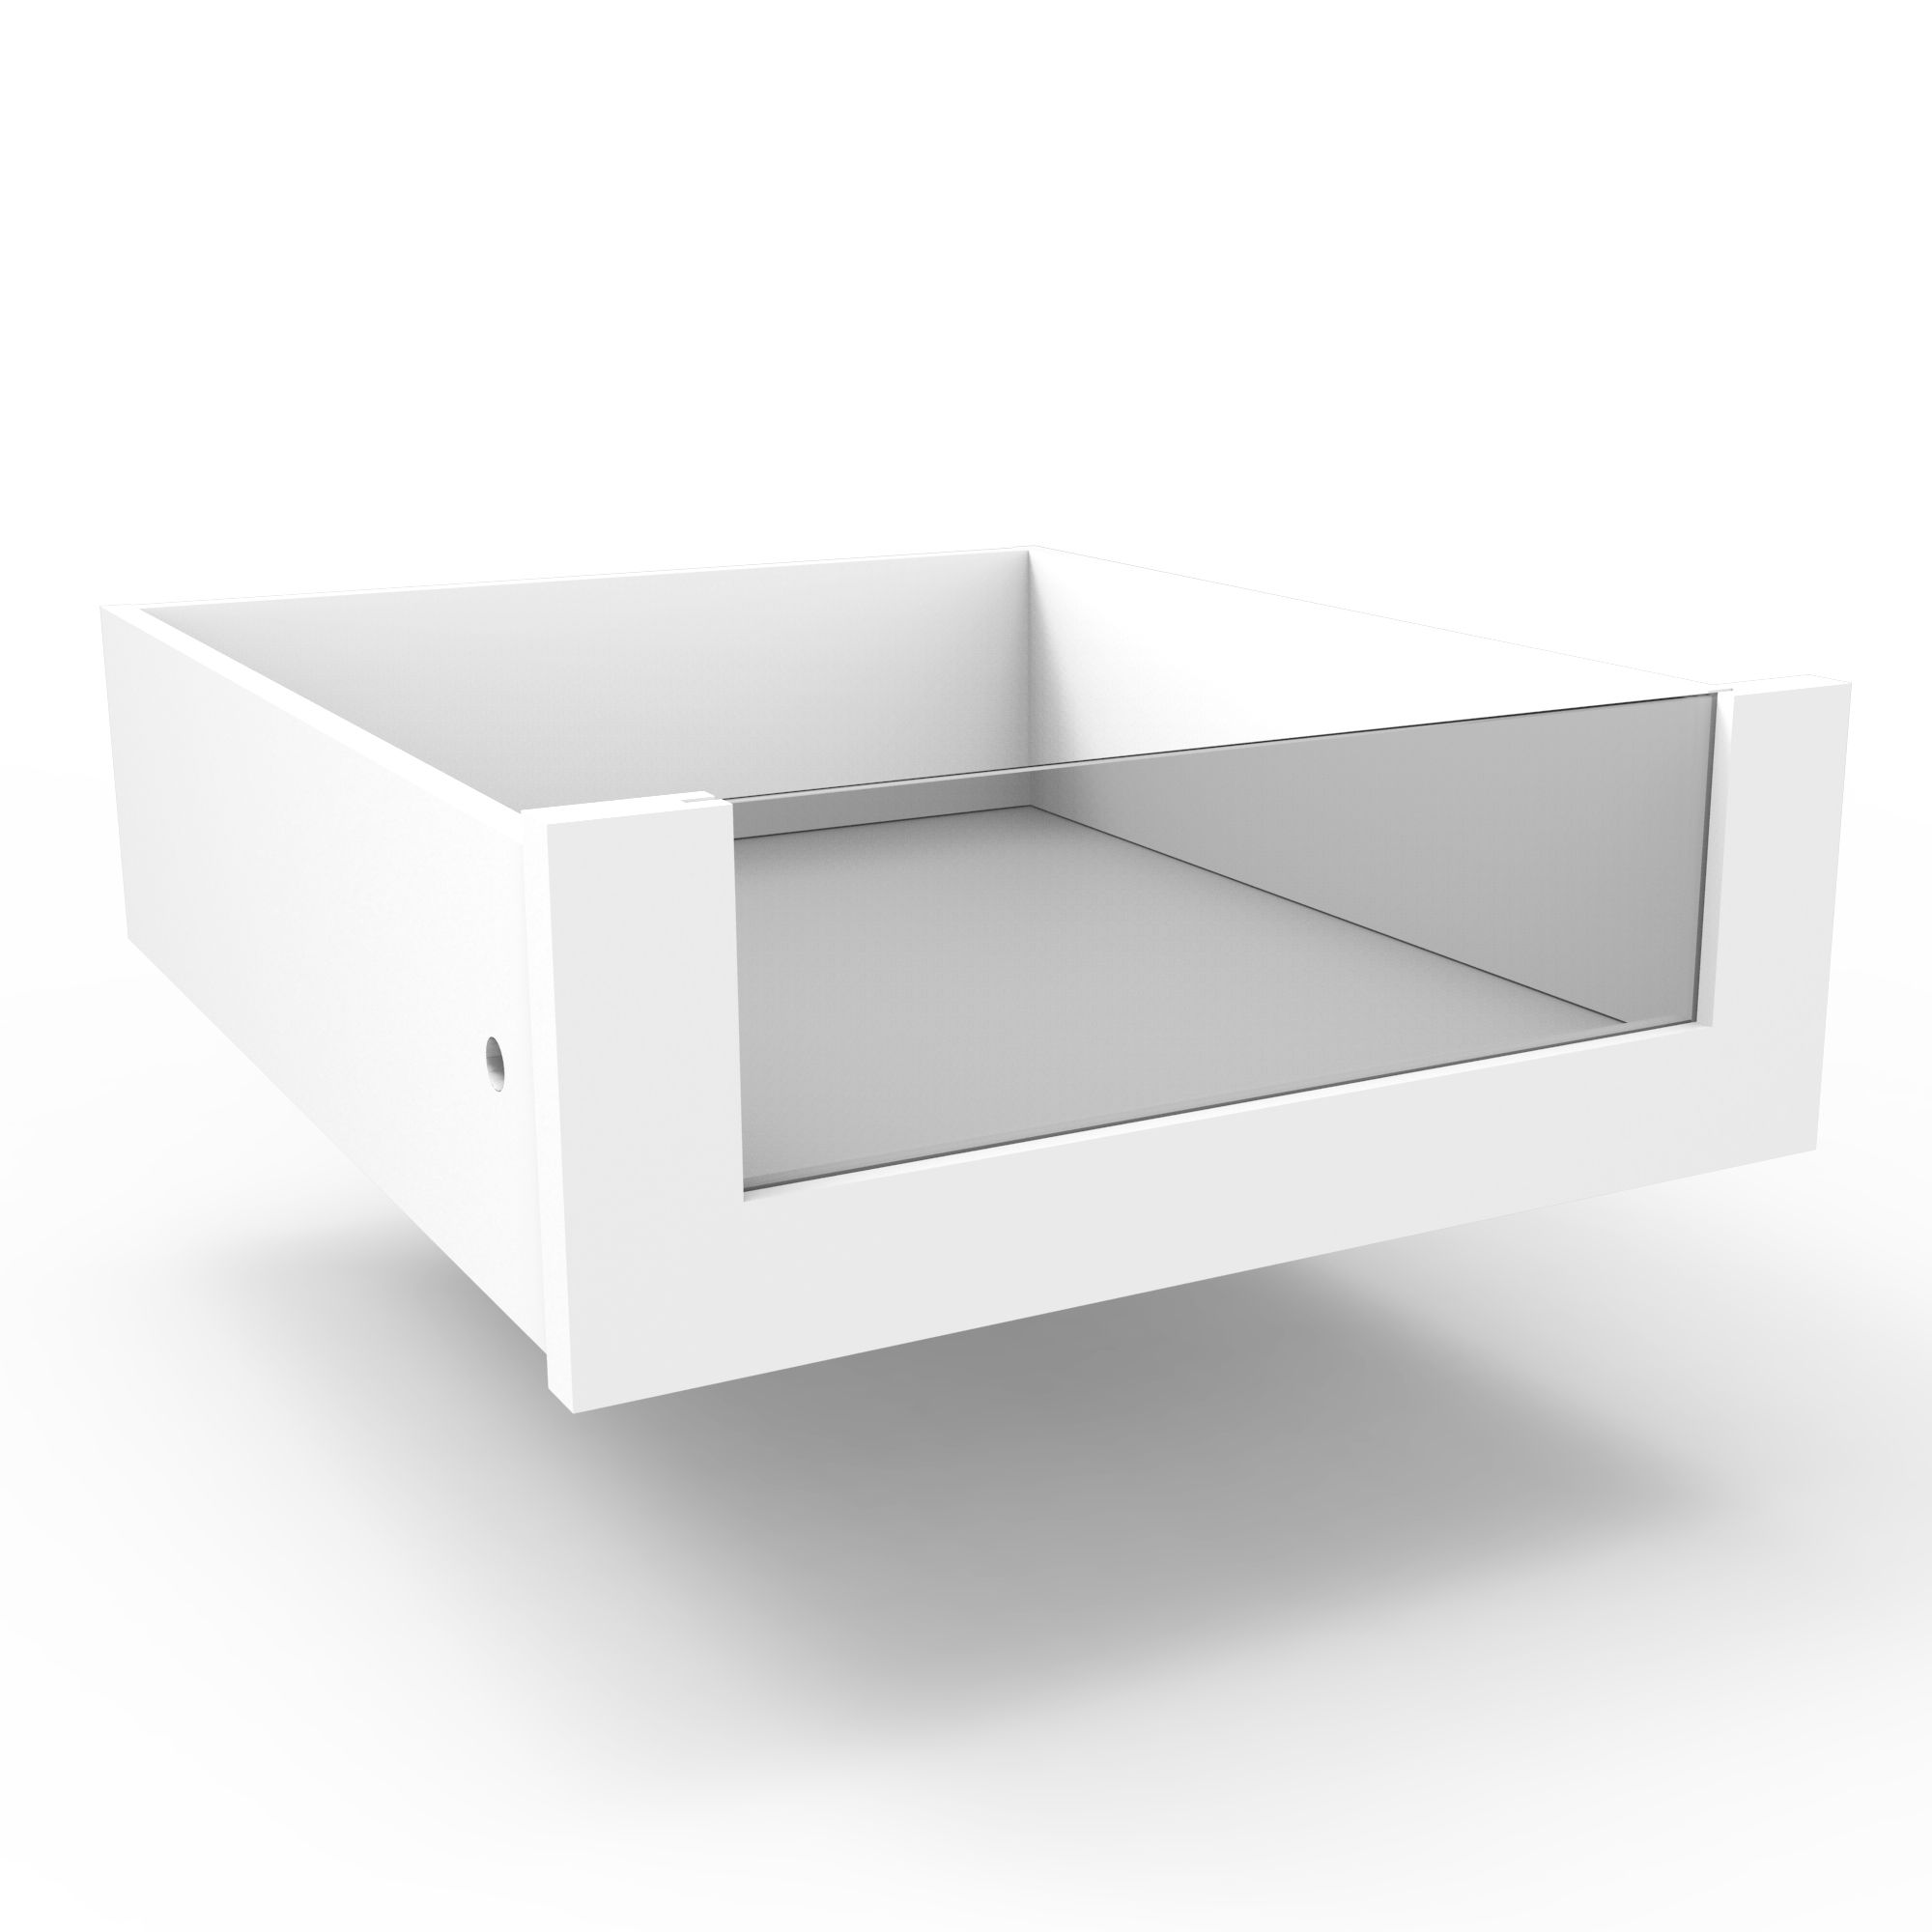 Darwin Modular White Internal Drawer (h)158mm (w)440mm (d)533mm